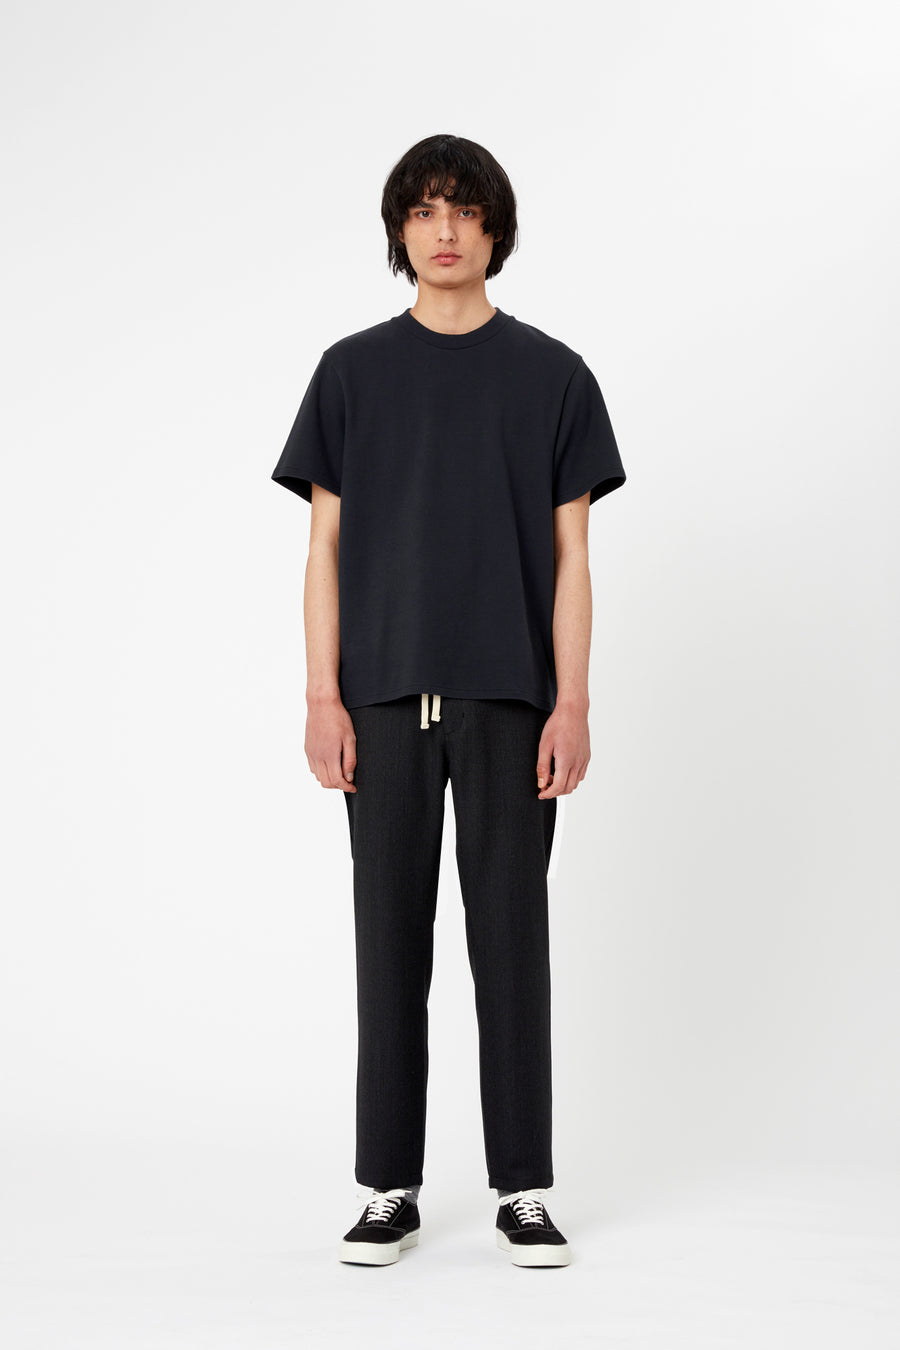 ILLUSION TROUSER - Wool Textured Twill